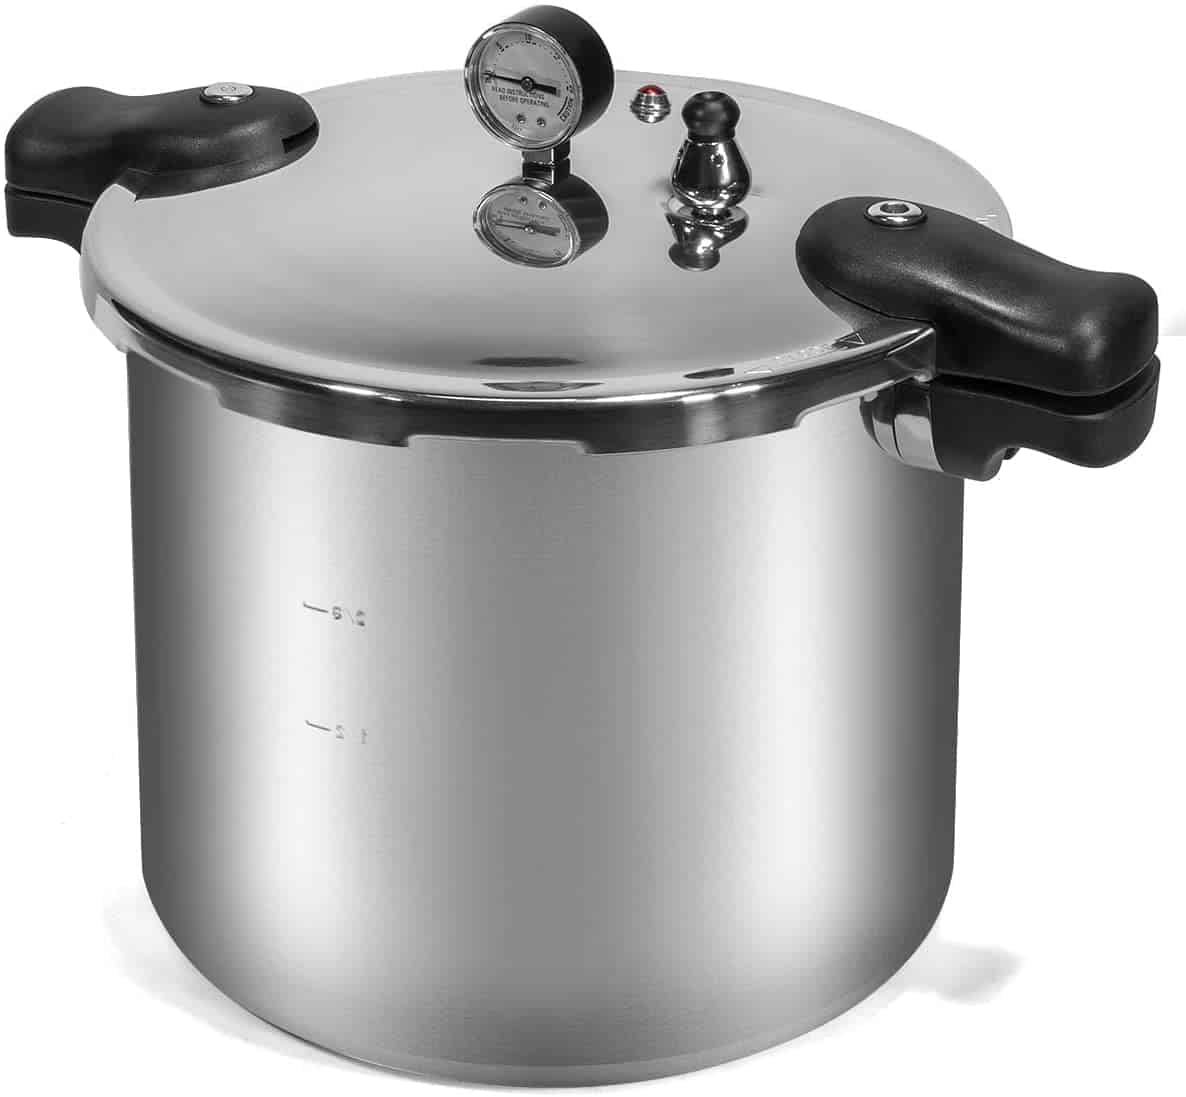 Barton Pressure Canner 22-Quart Capacity Pressure Cooker Built-in Pressure Gauge